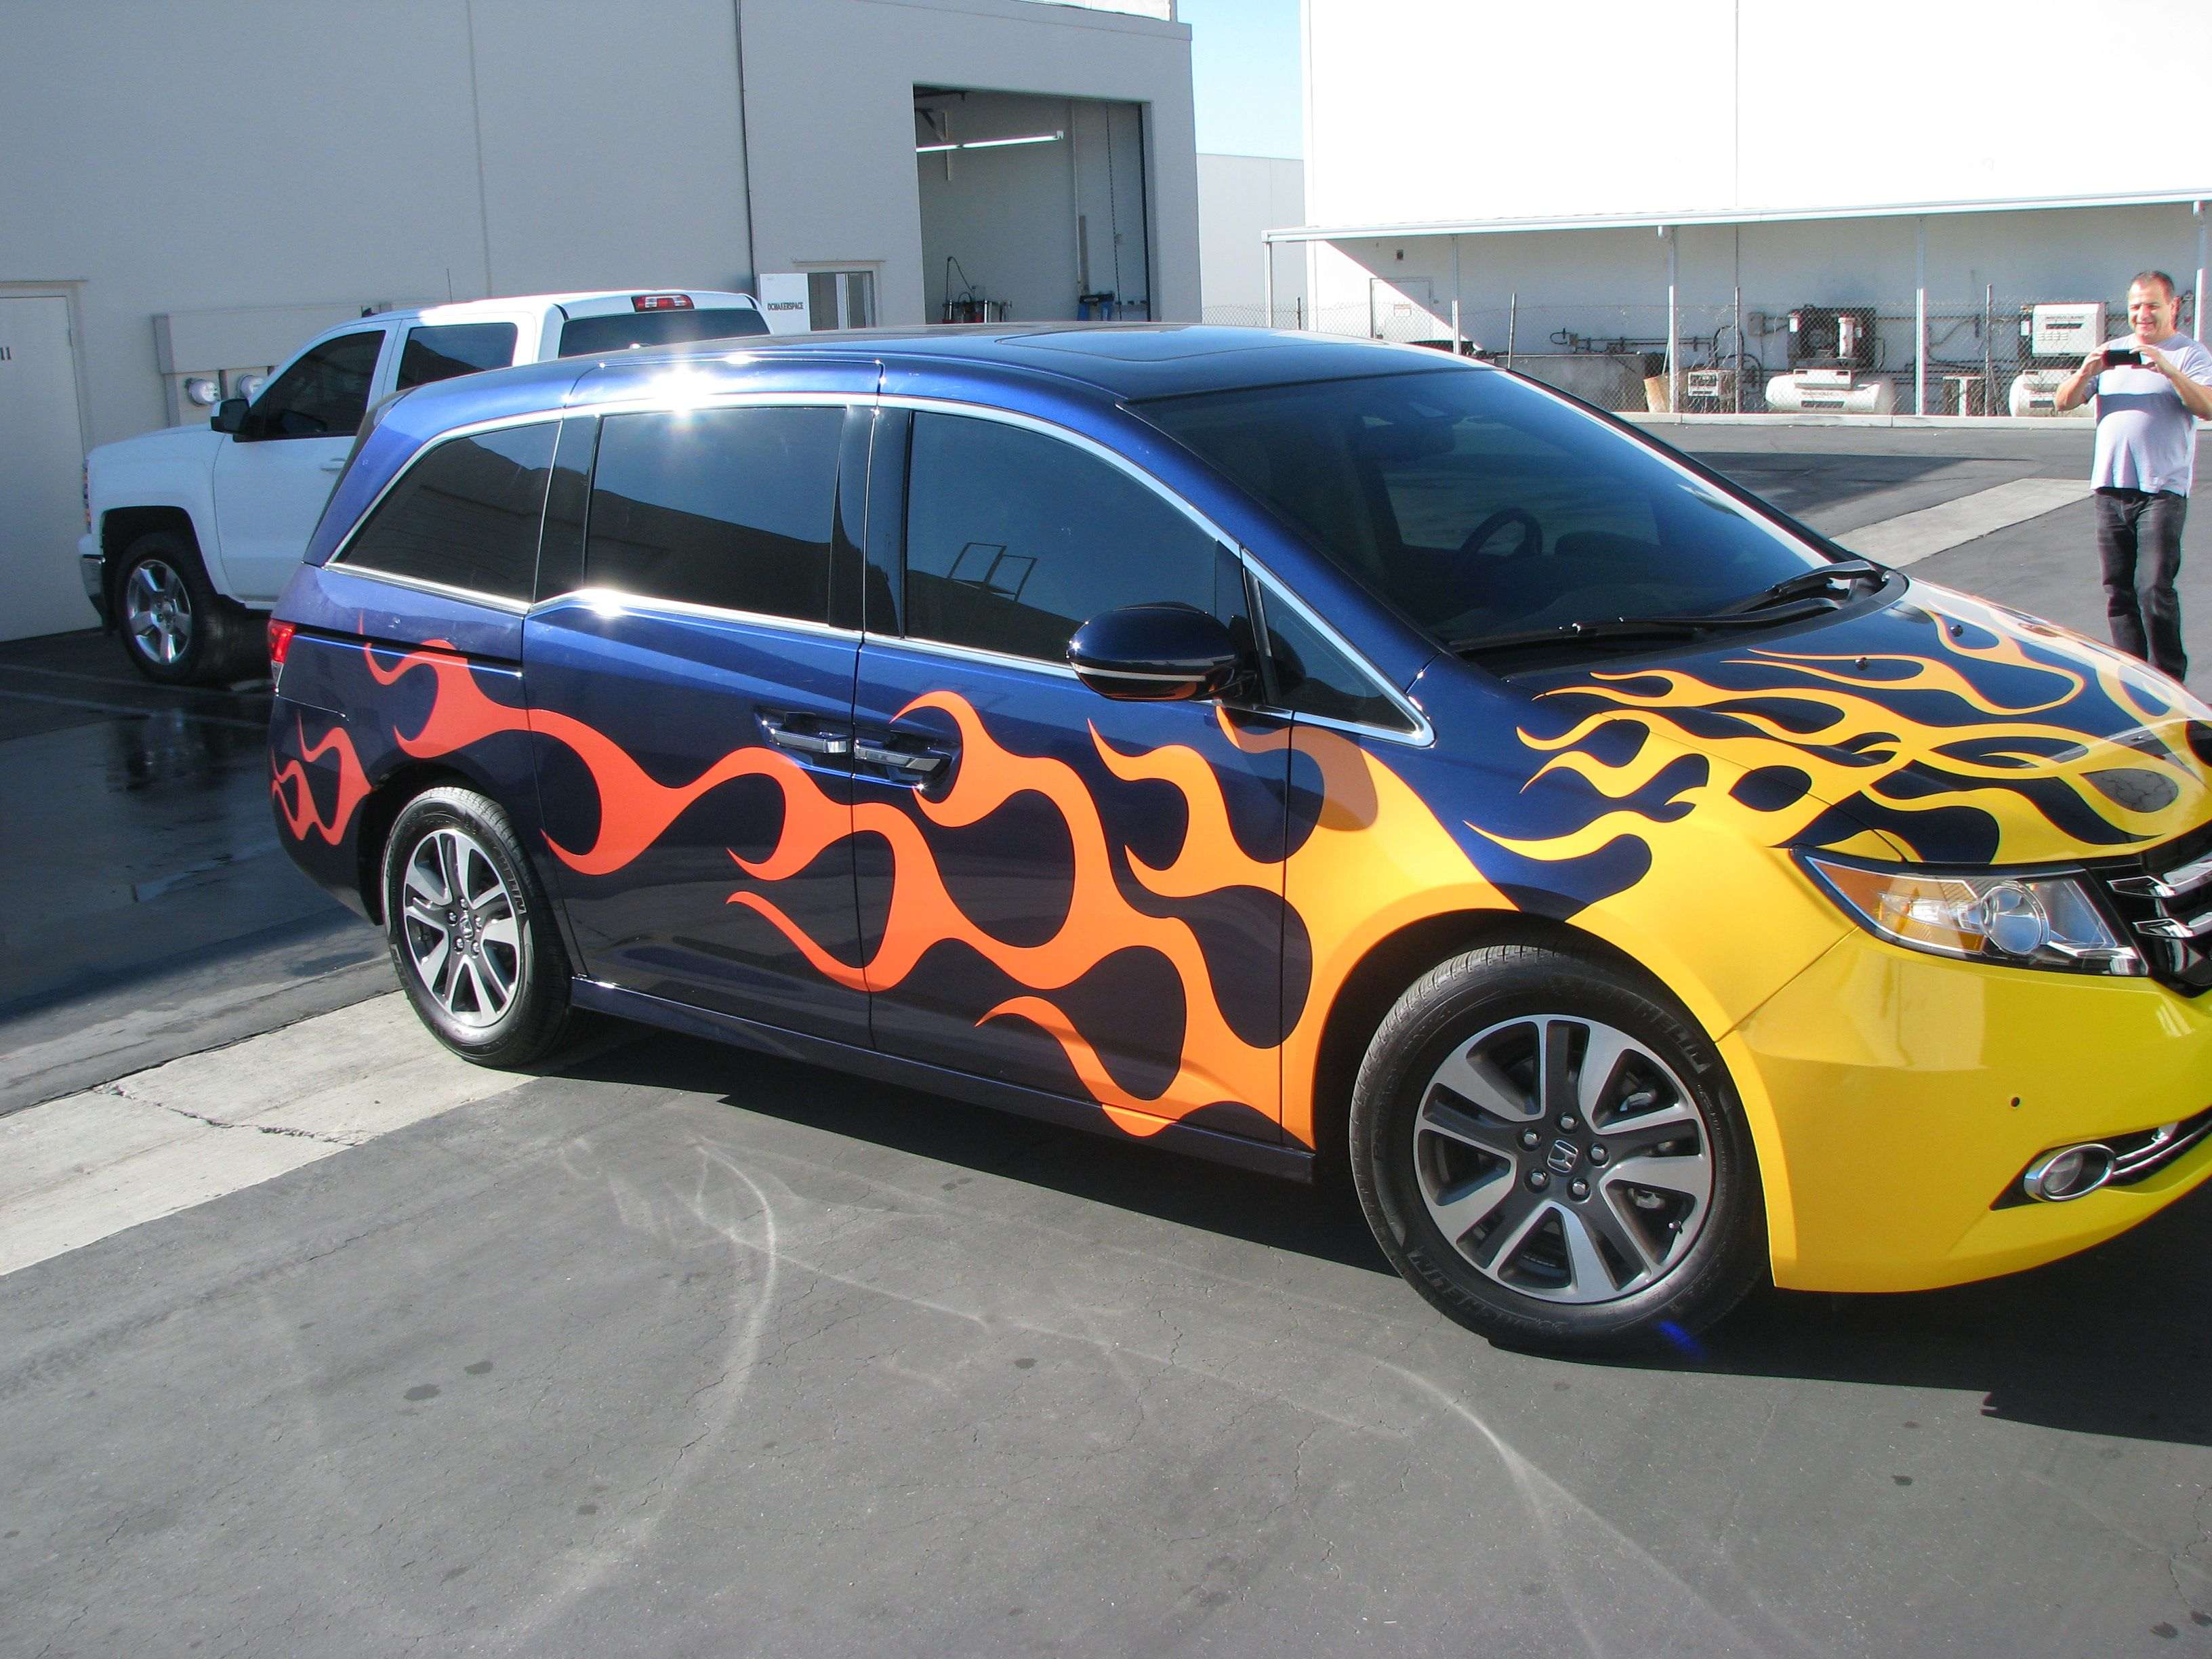 Add Some Flames To Your Minivan Make You The Coolest Dad In Town